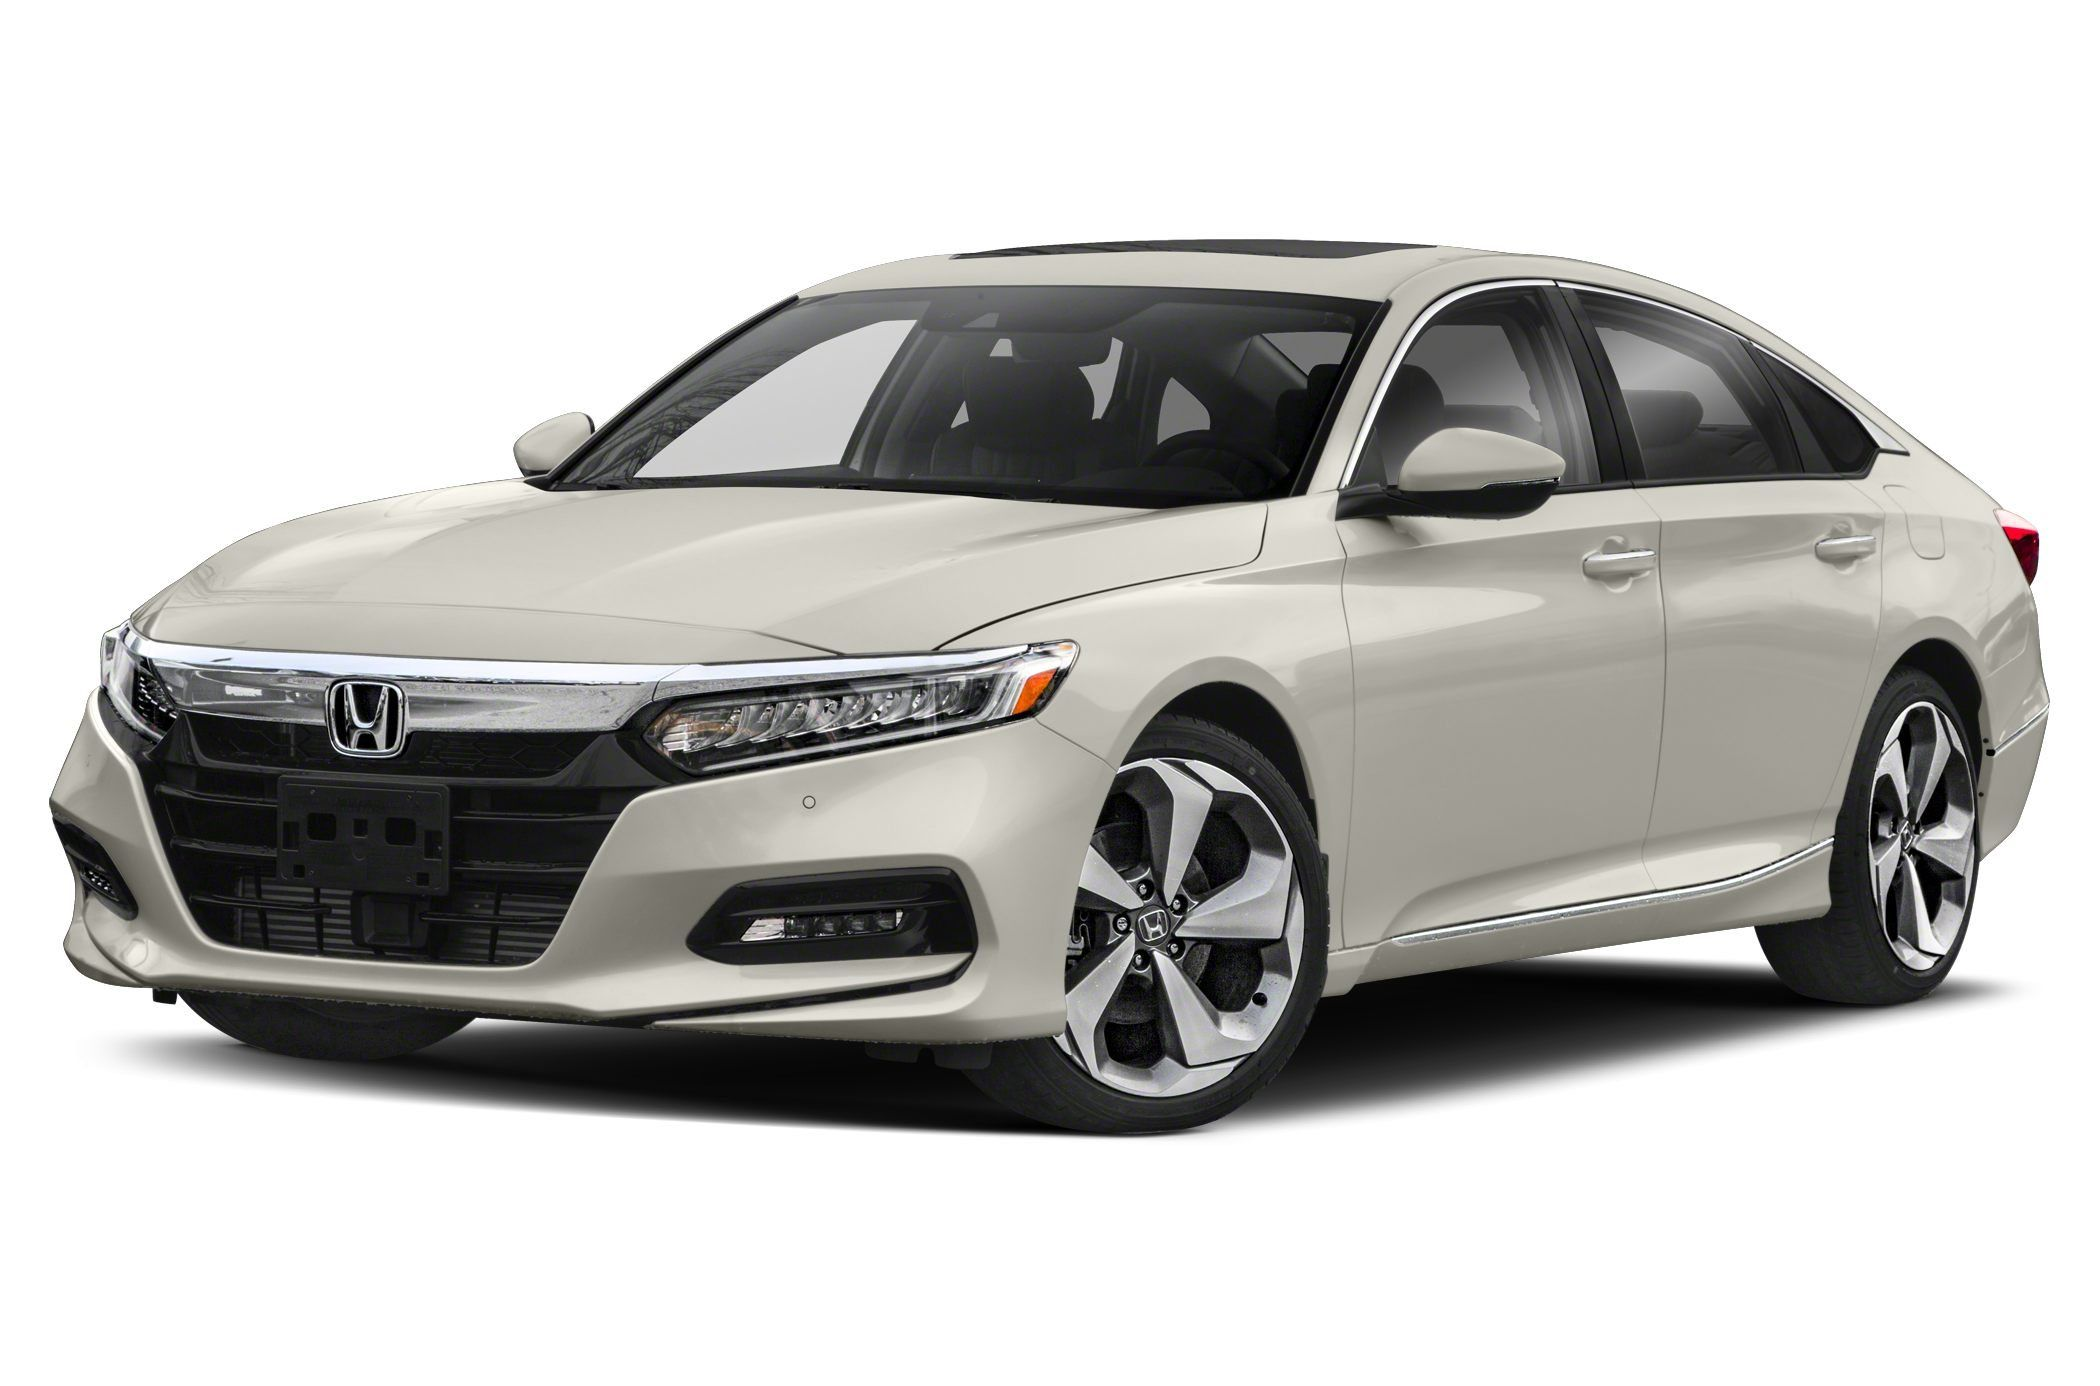 2020 Honda Accord Sport Overview in 2020 Honda accord